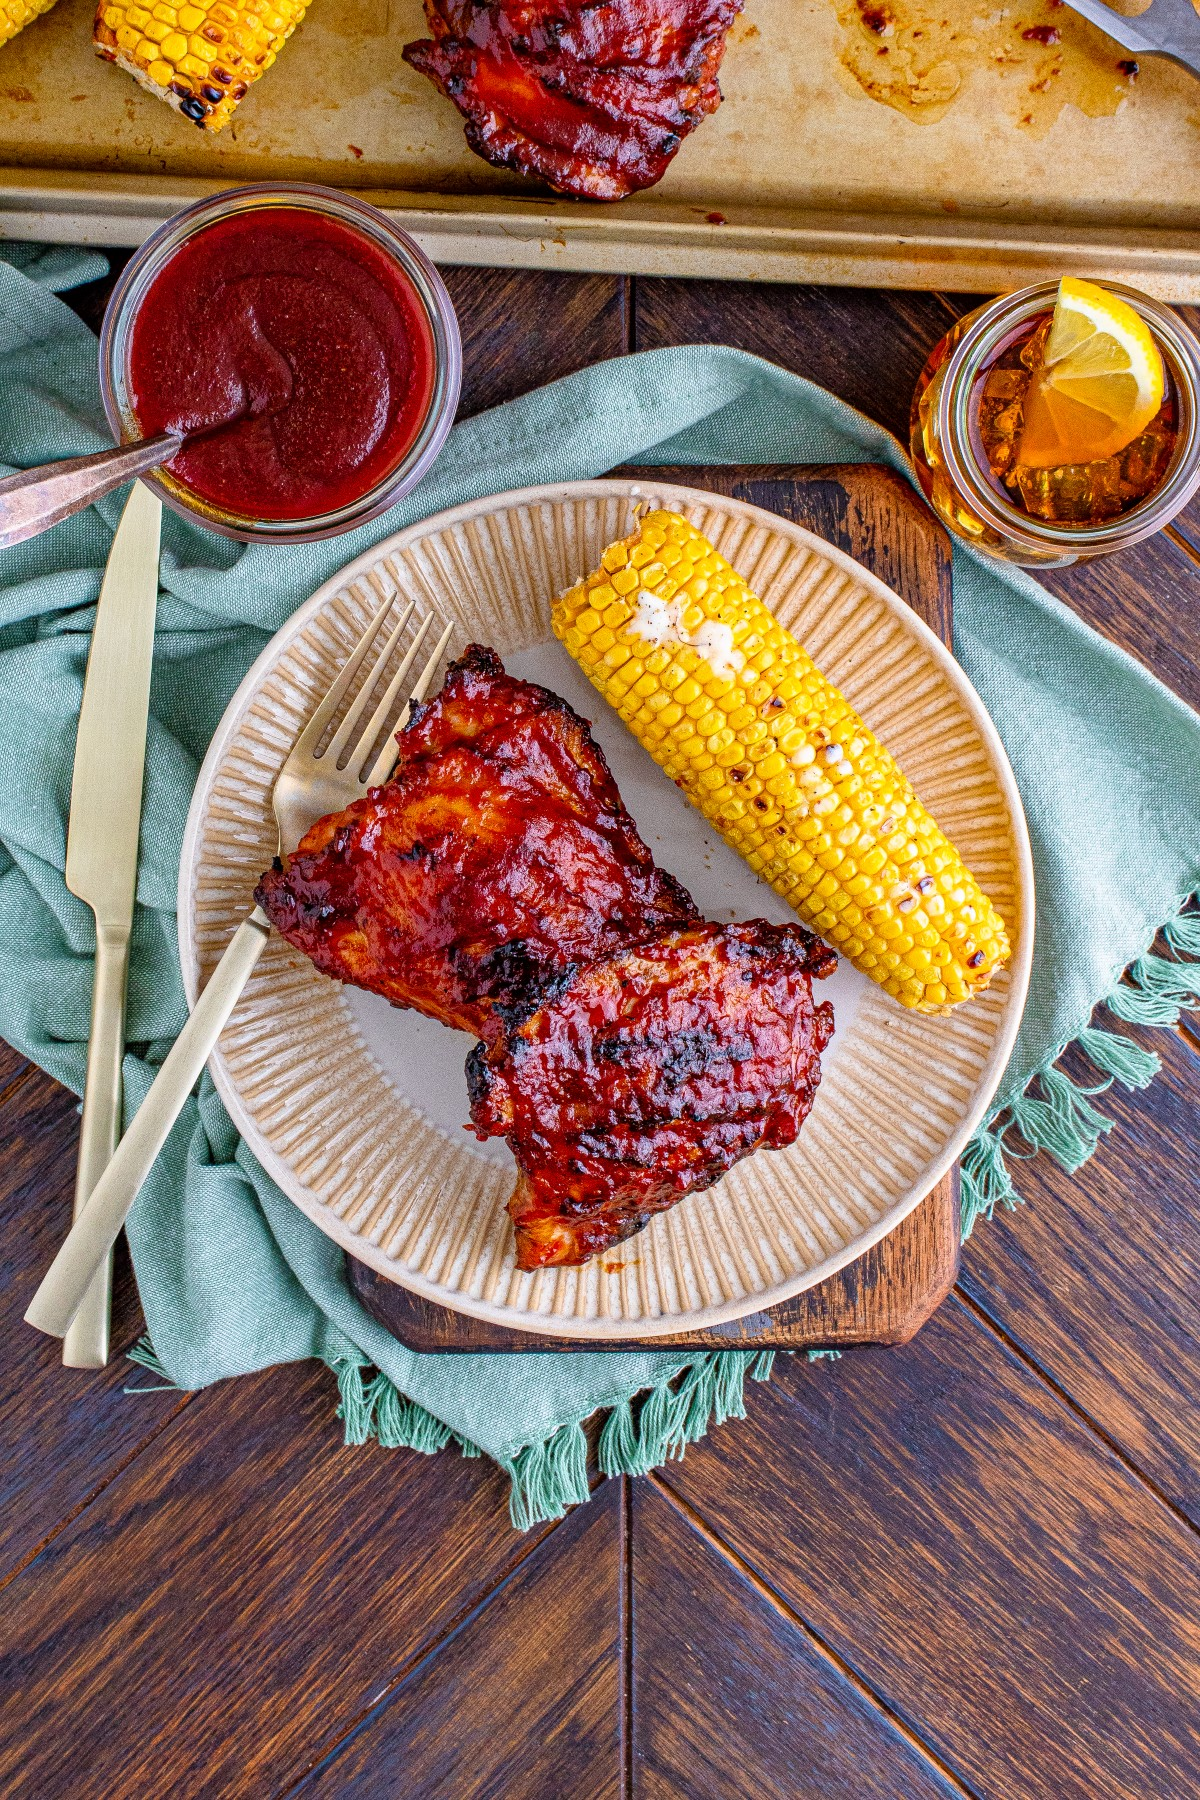 Grilled BBQ chicken covered in BBQ sauce on a cream colored plate with grilled corn on the cob and a knife and fork.